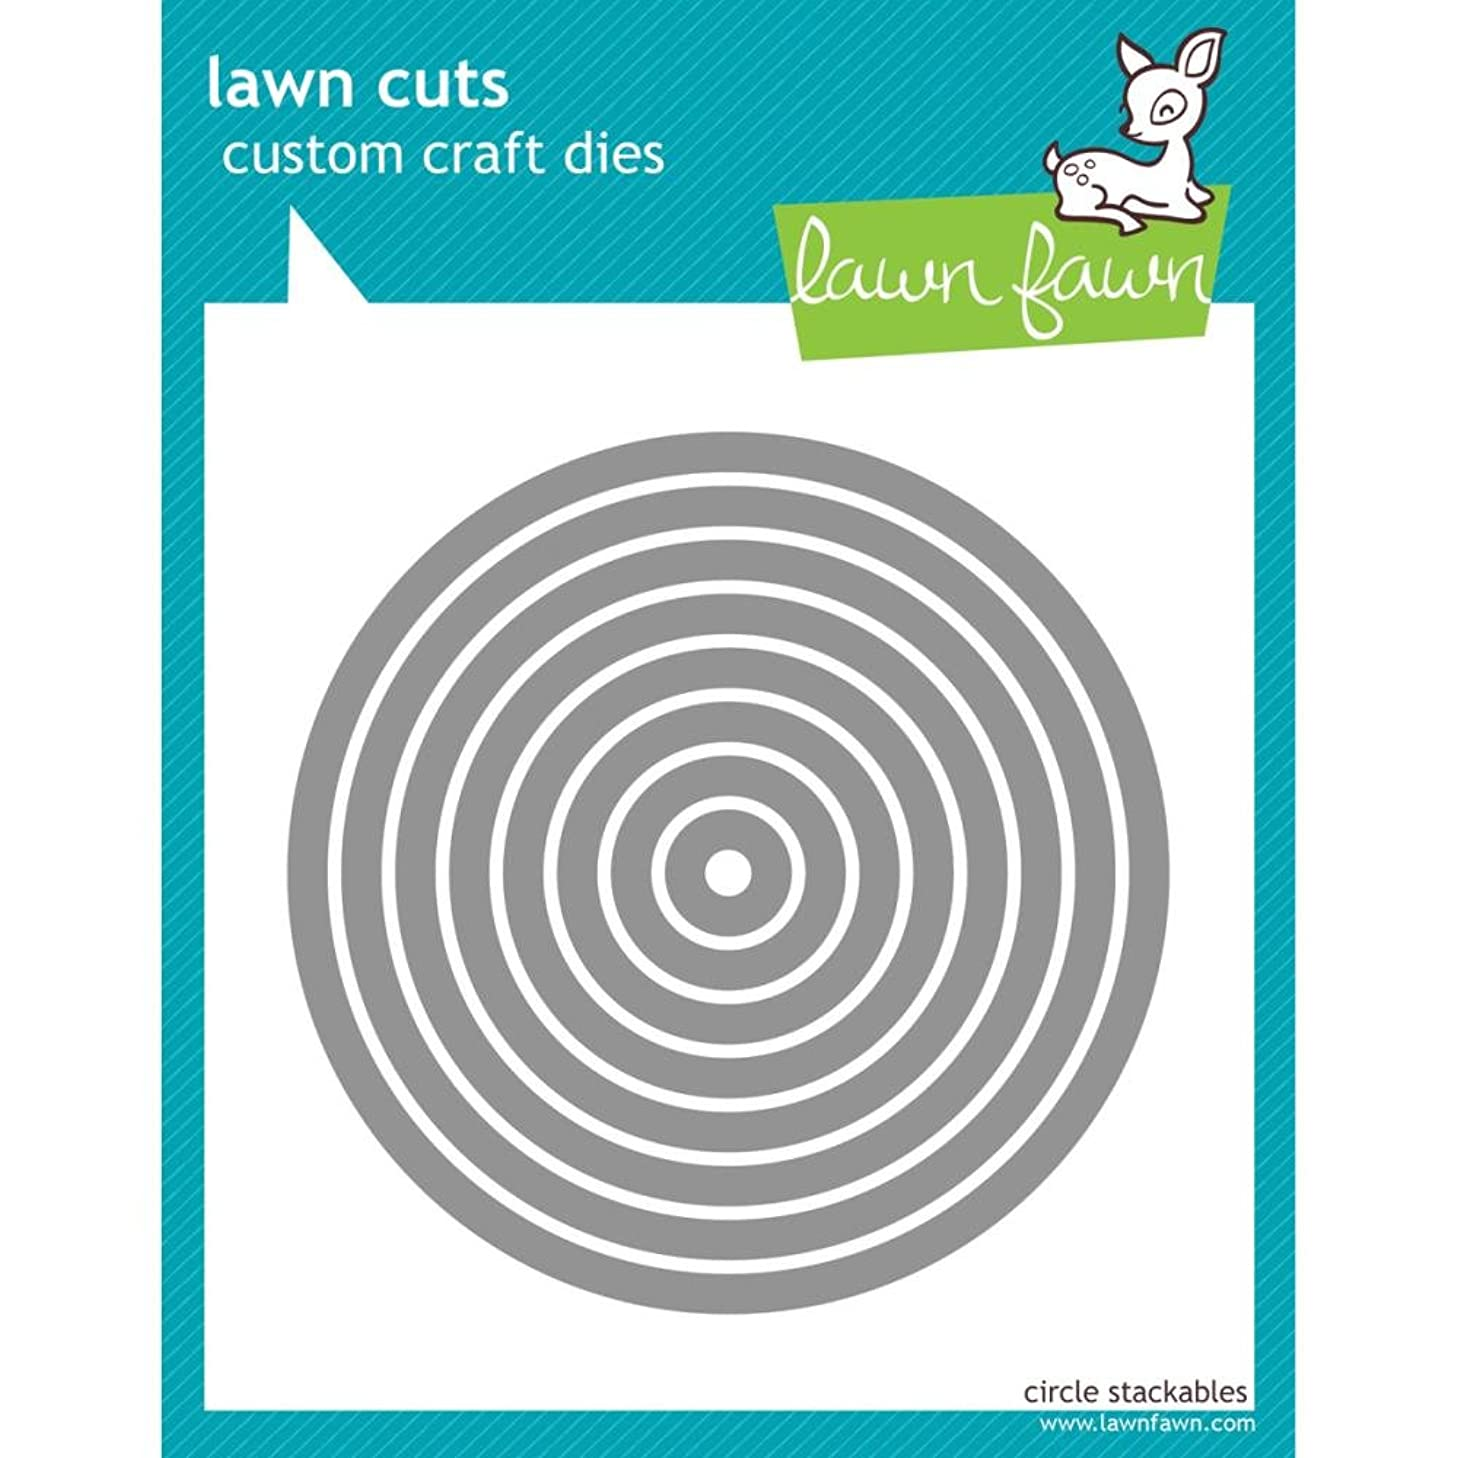 Lawn Cuts Custom Craft Dies-Circle Stackables